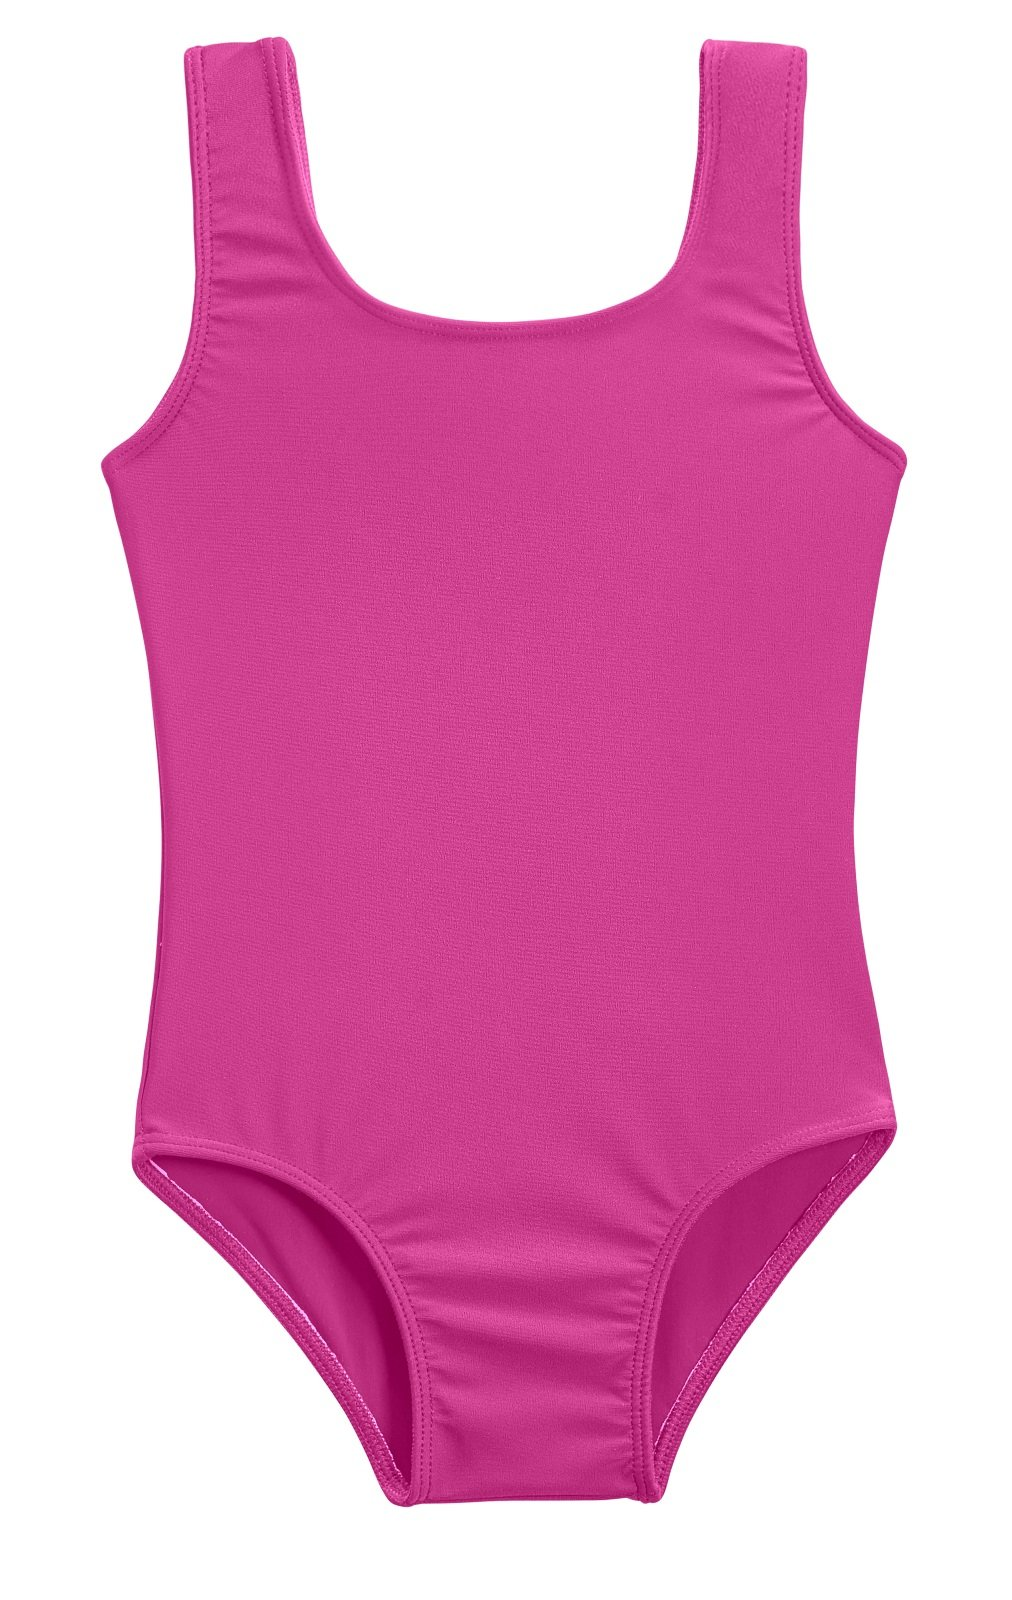 City Threads Girls' One Piece Swimming Suit with Sun Protection SPF for Beach Pool or Play Swim Suit Rash Guard Bottoms Briefs, Hot Pink, 2T